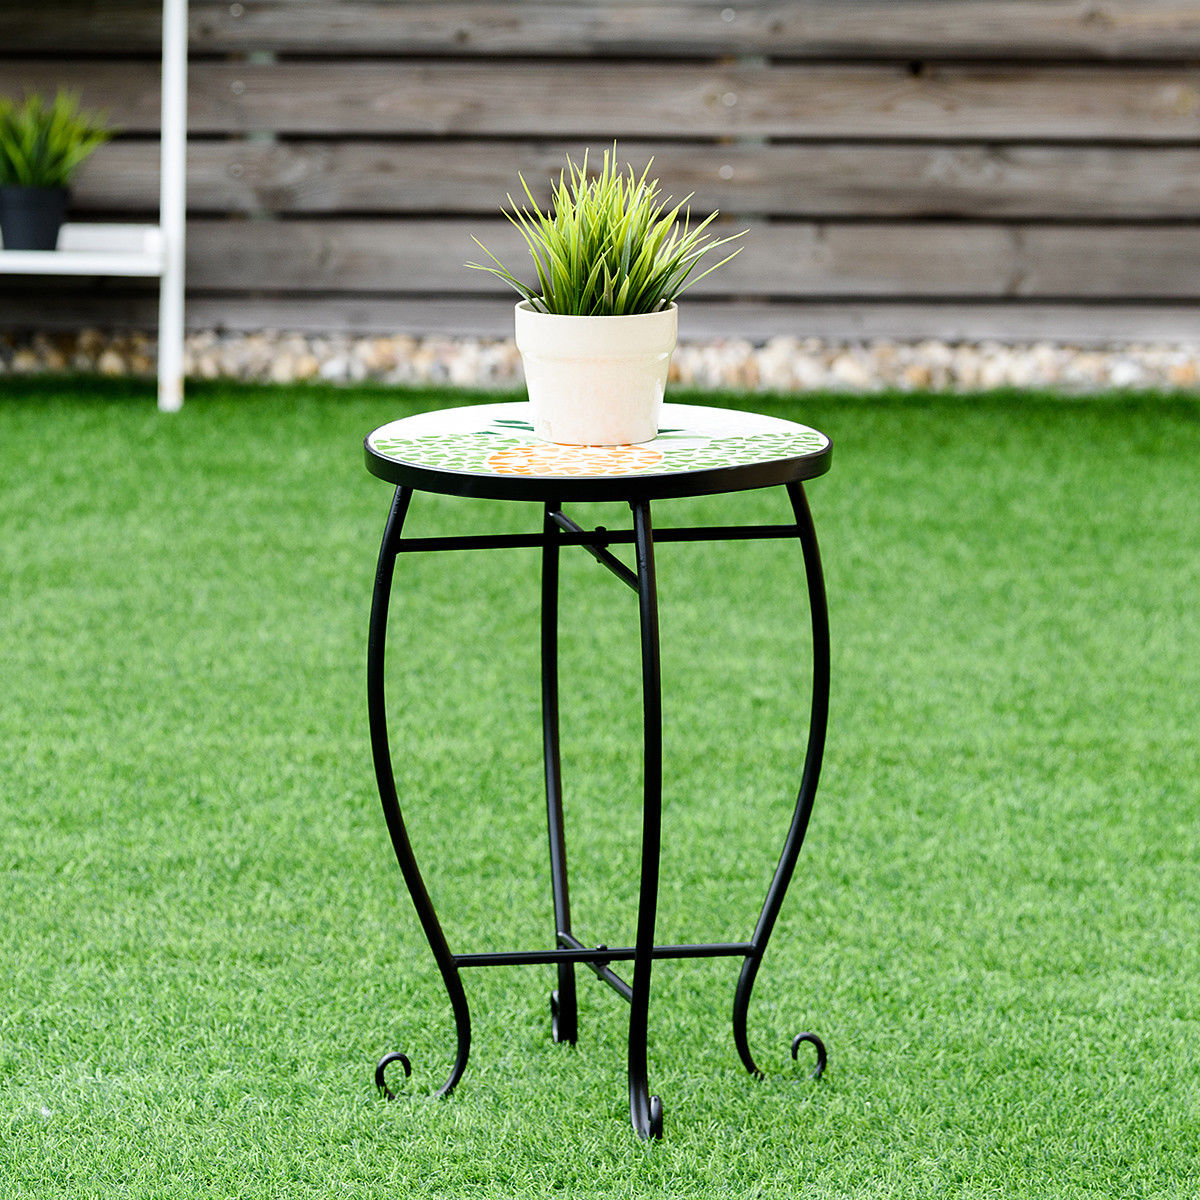 way pineapple outdoor indoor accent table plant stand scheme garden steel drummer stool adjustable height mirror lamp white cube coffee centerpiece ideas for home wine cabinet